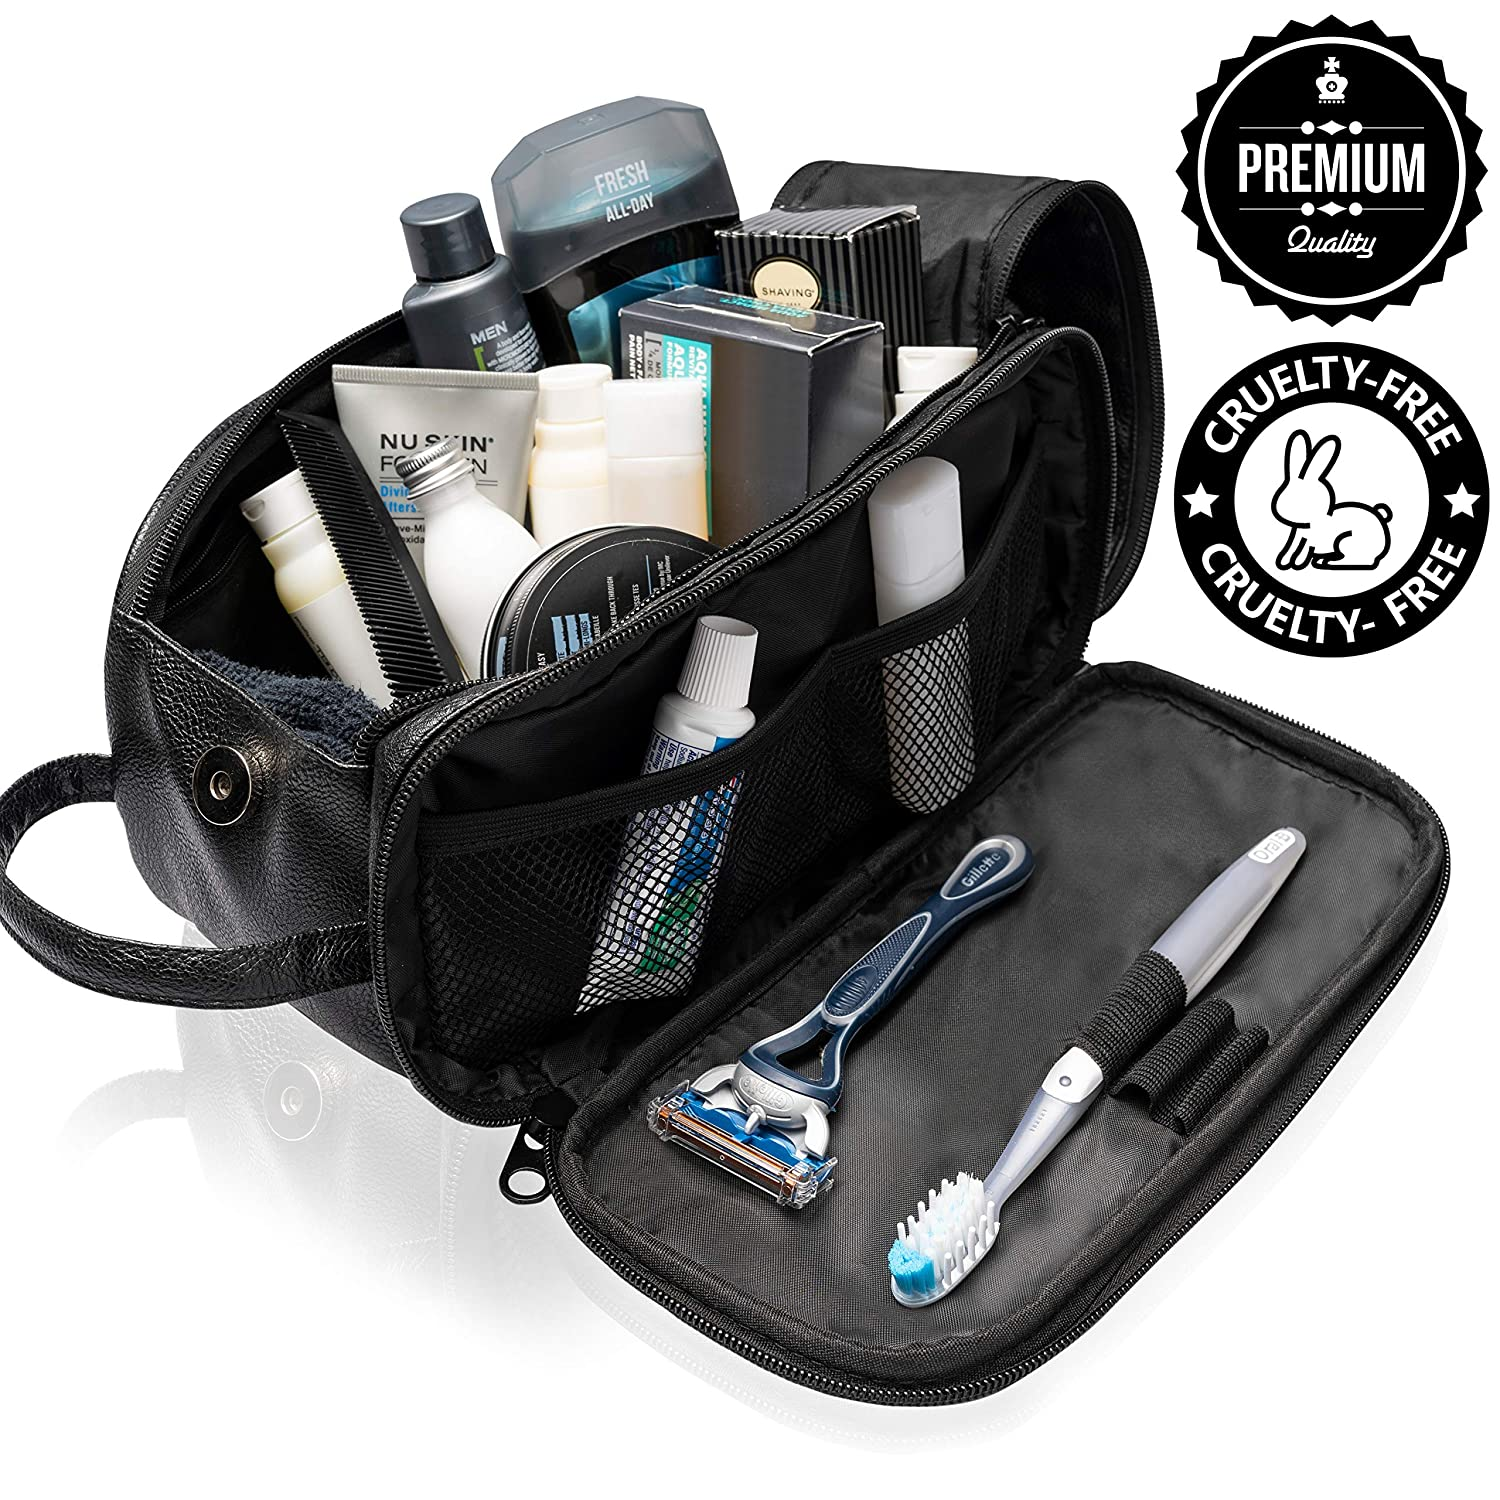 Toiletry Bag for Men or Women - Dopp Kit For Travel. Cruelty Free Toiletries Organizer PU Leather Bags Quality Selections USA